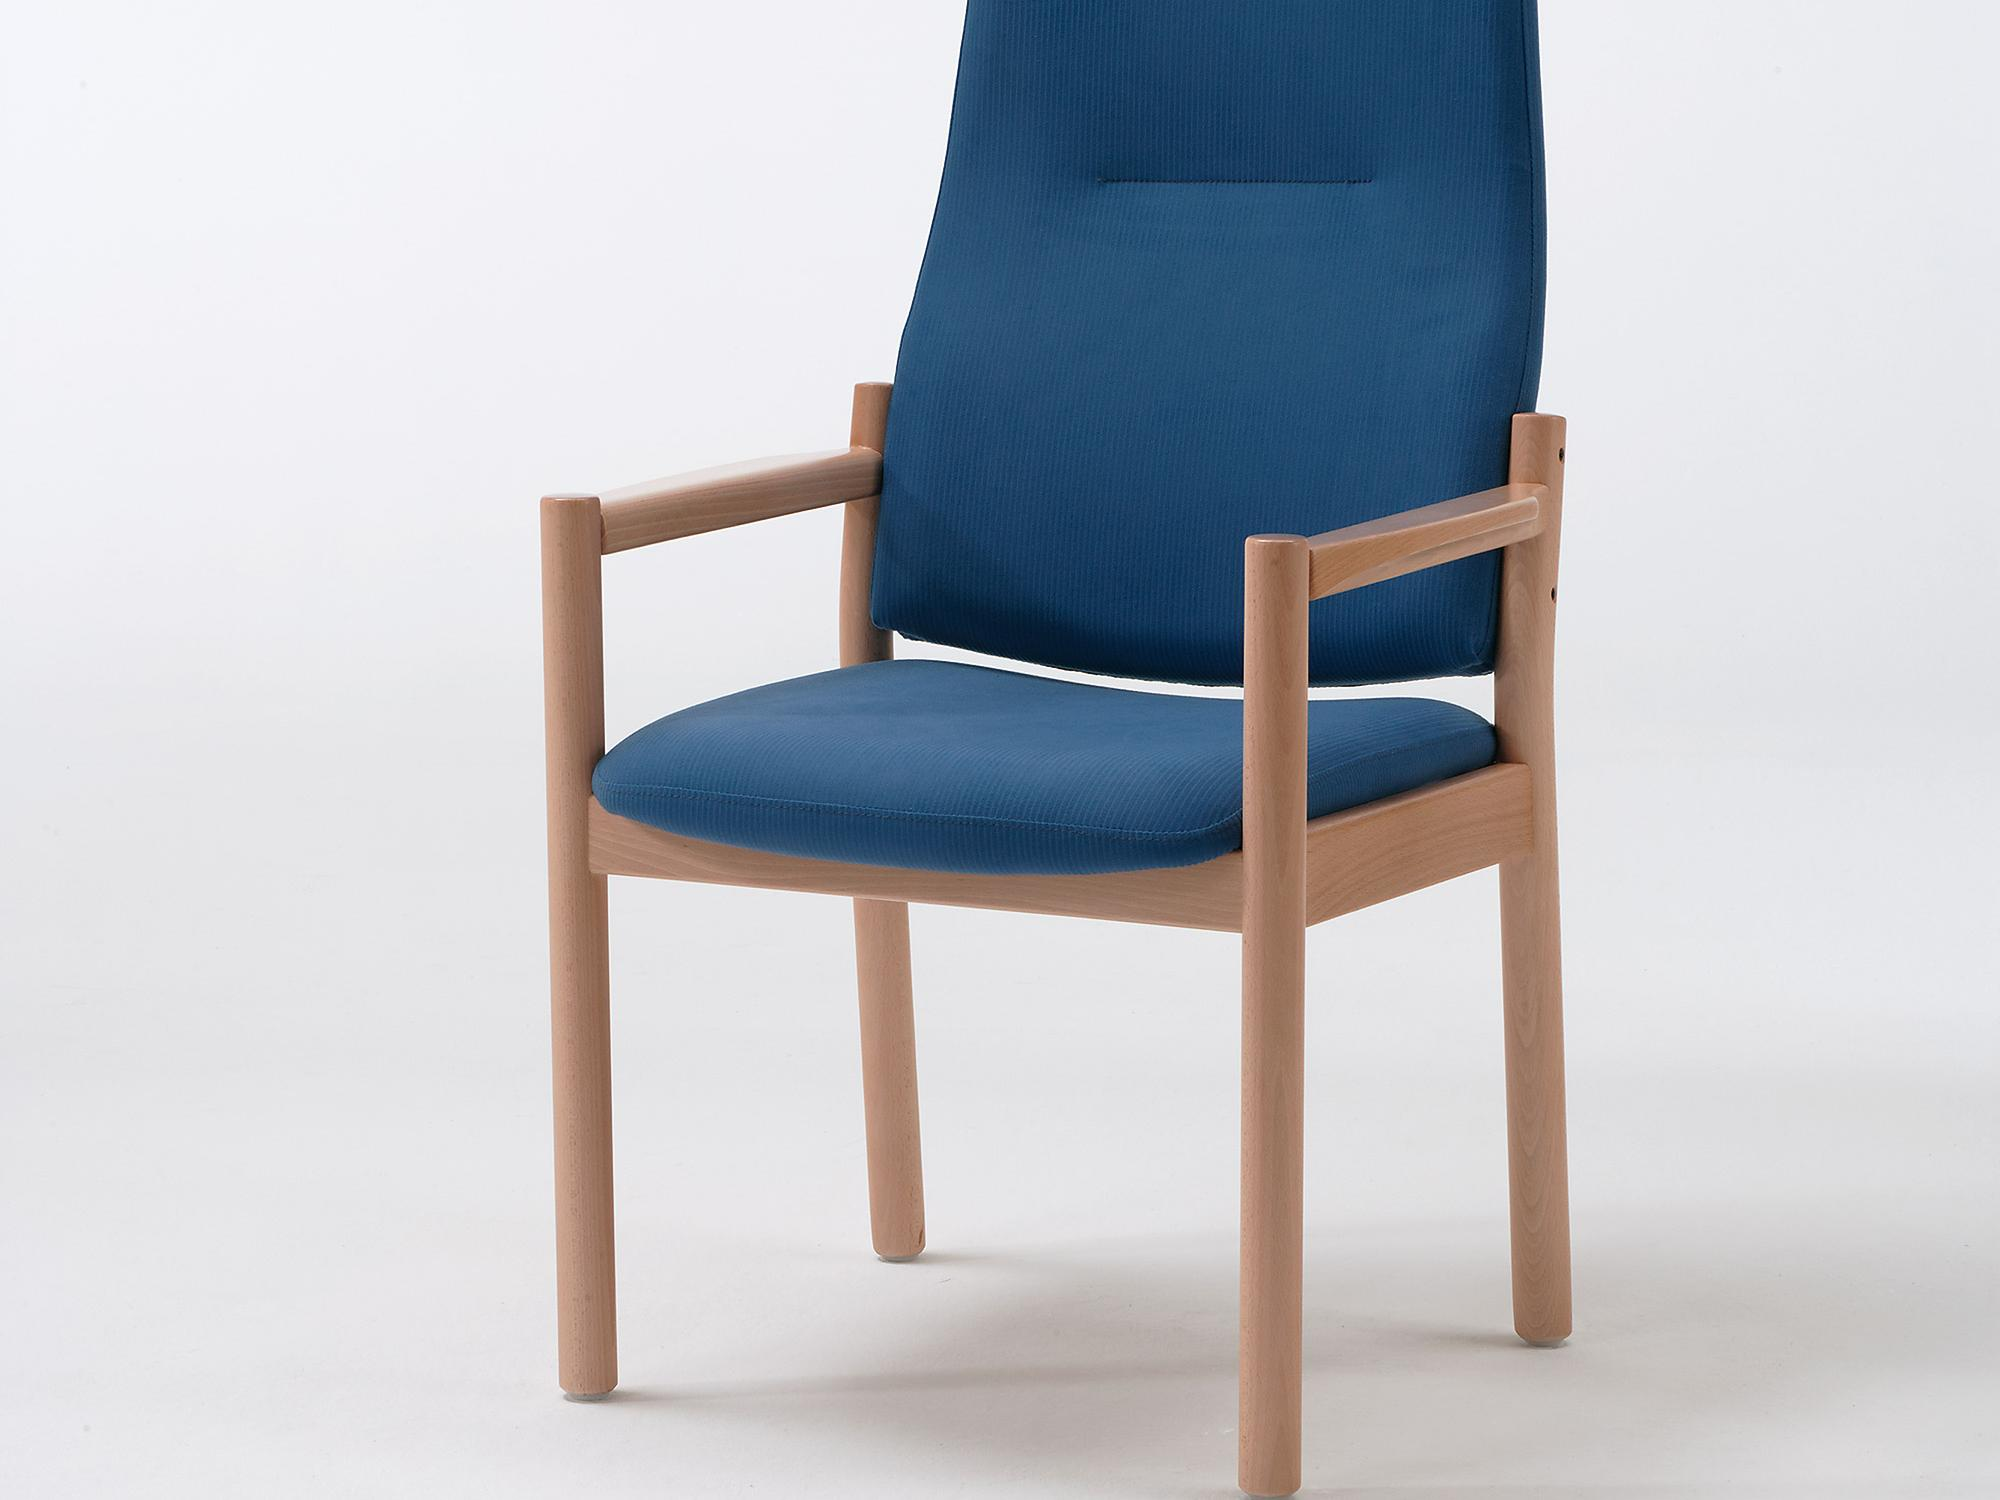 The Primo model as a high-back chair